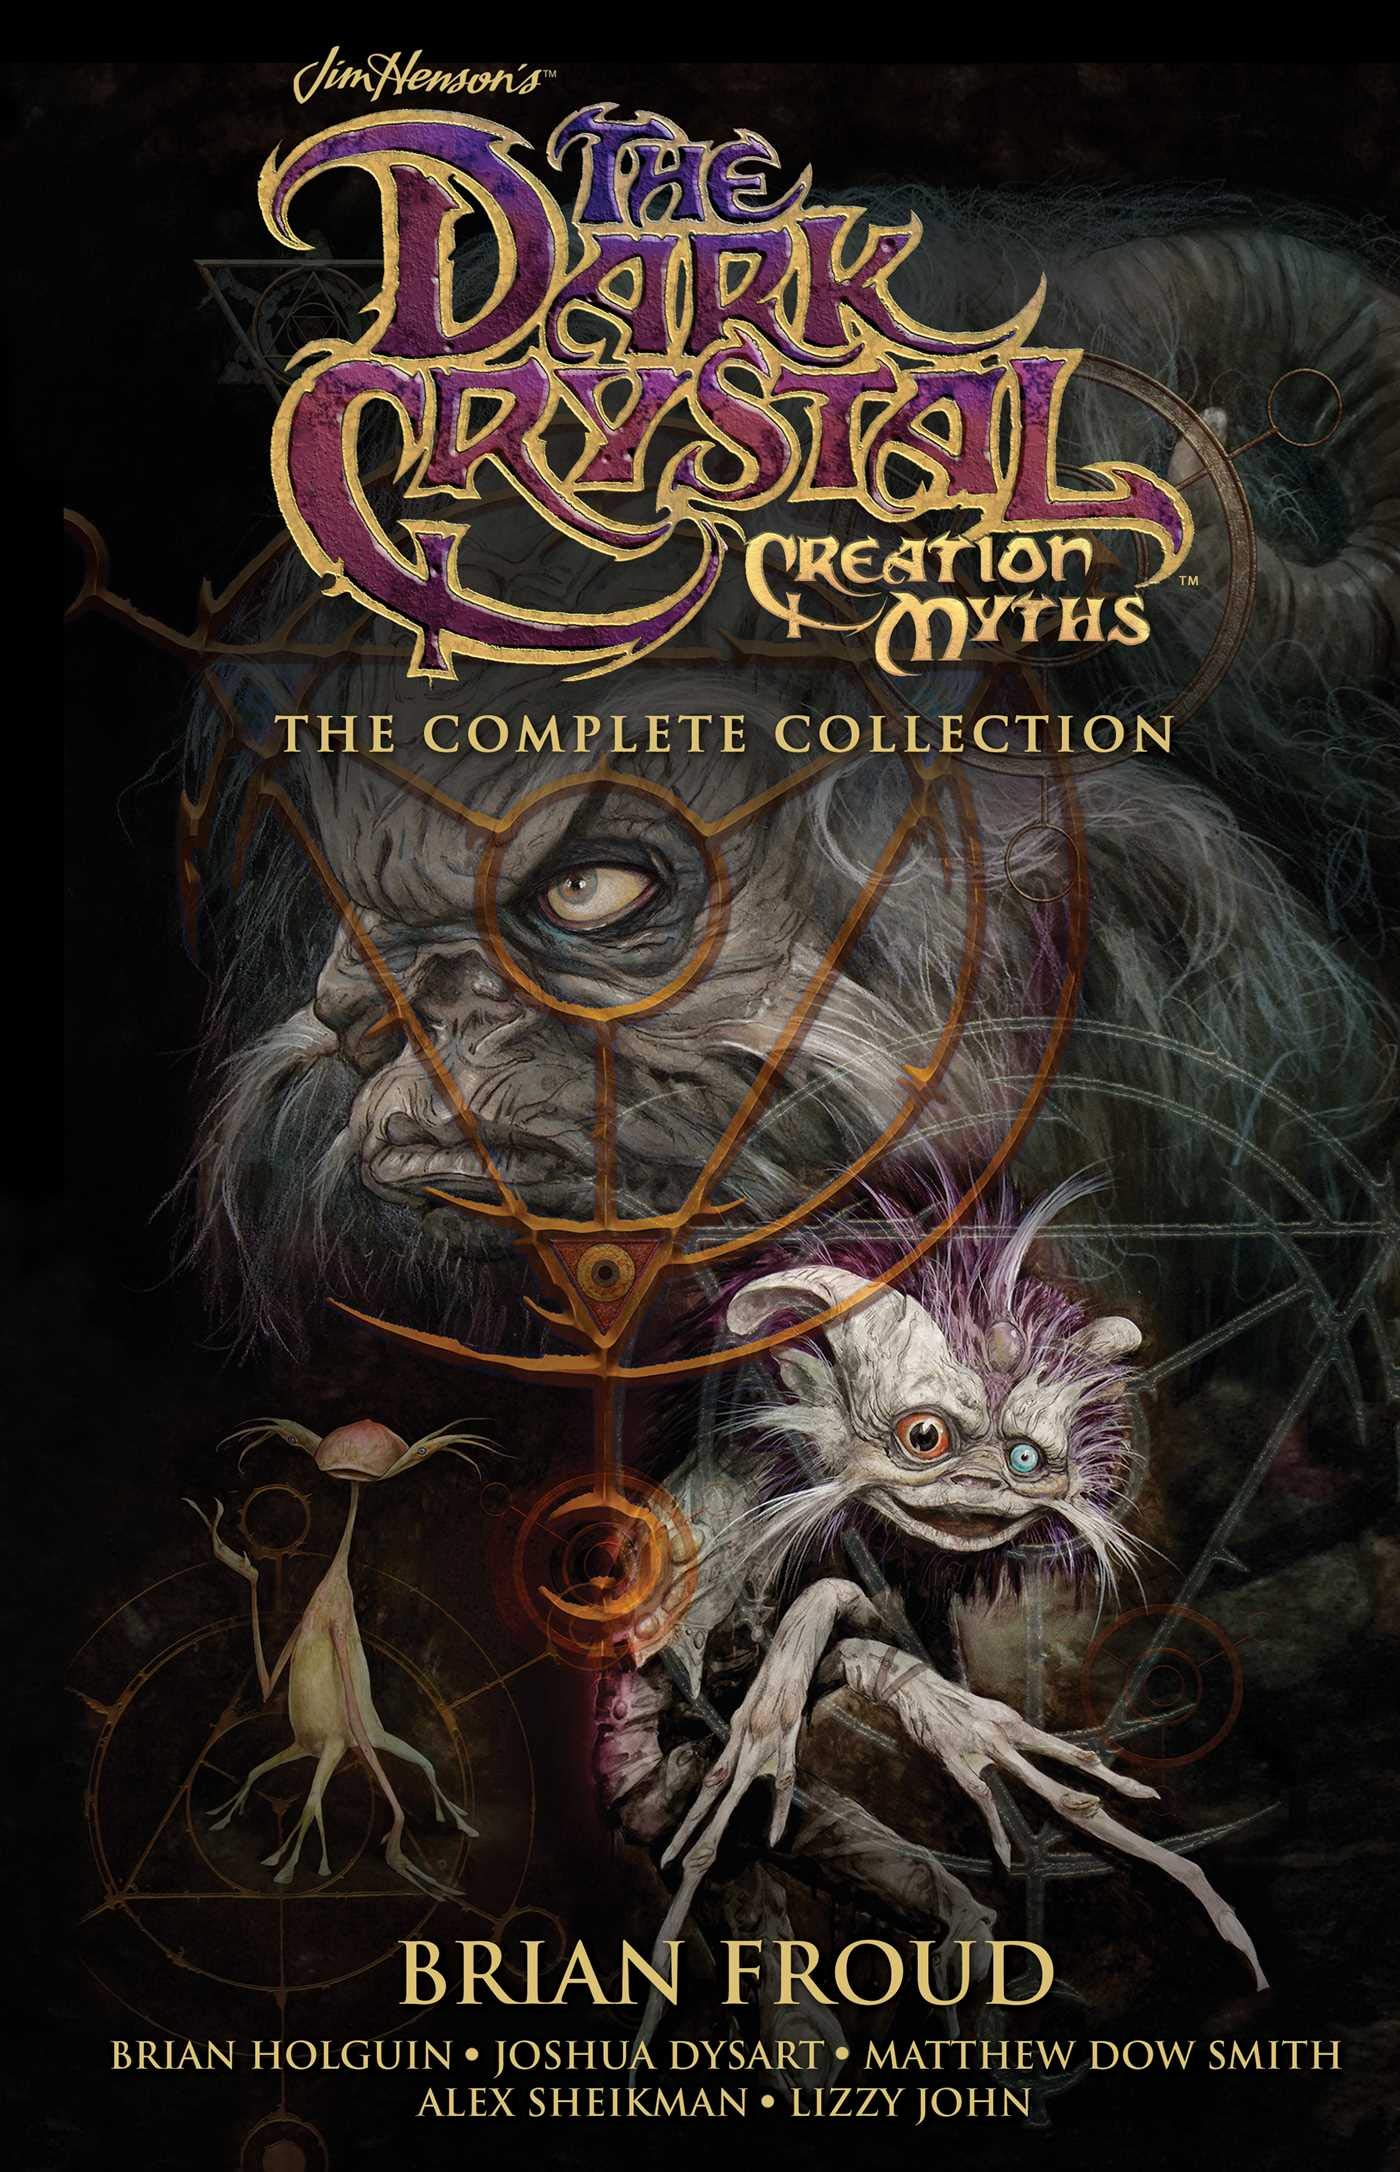 Jim Henson's The Dark Crystal Creation Myths: The Complete Collection by Archaia